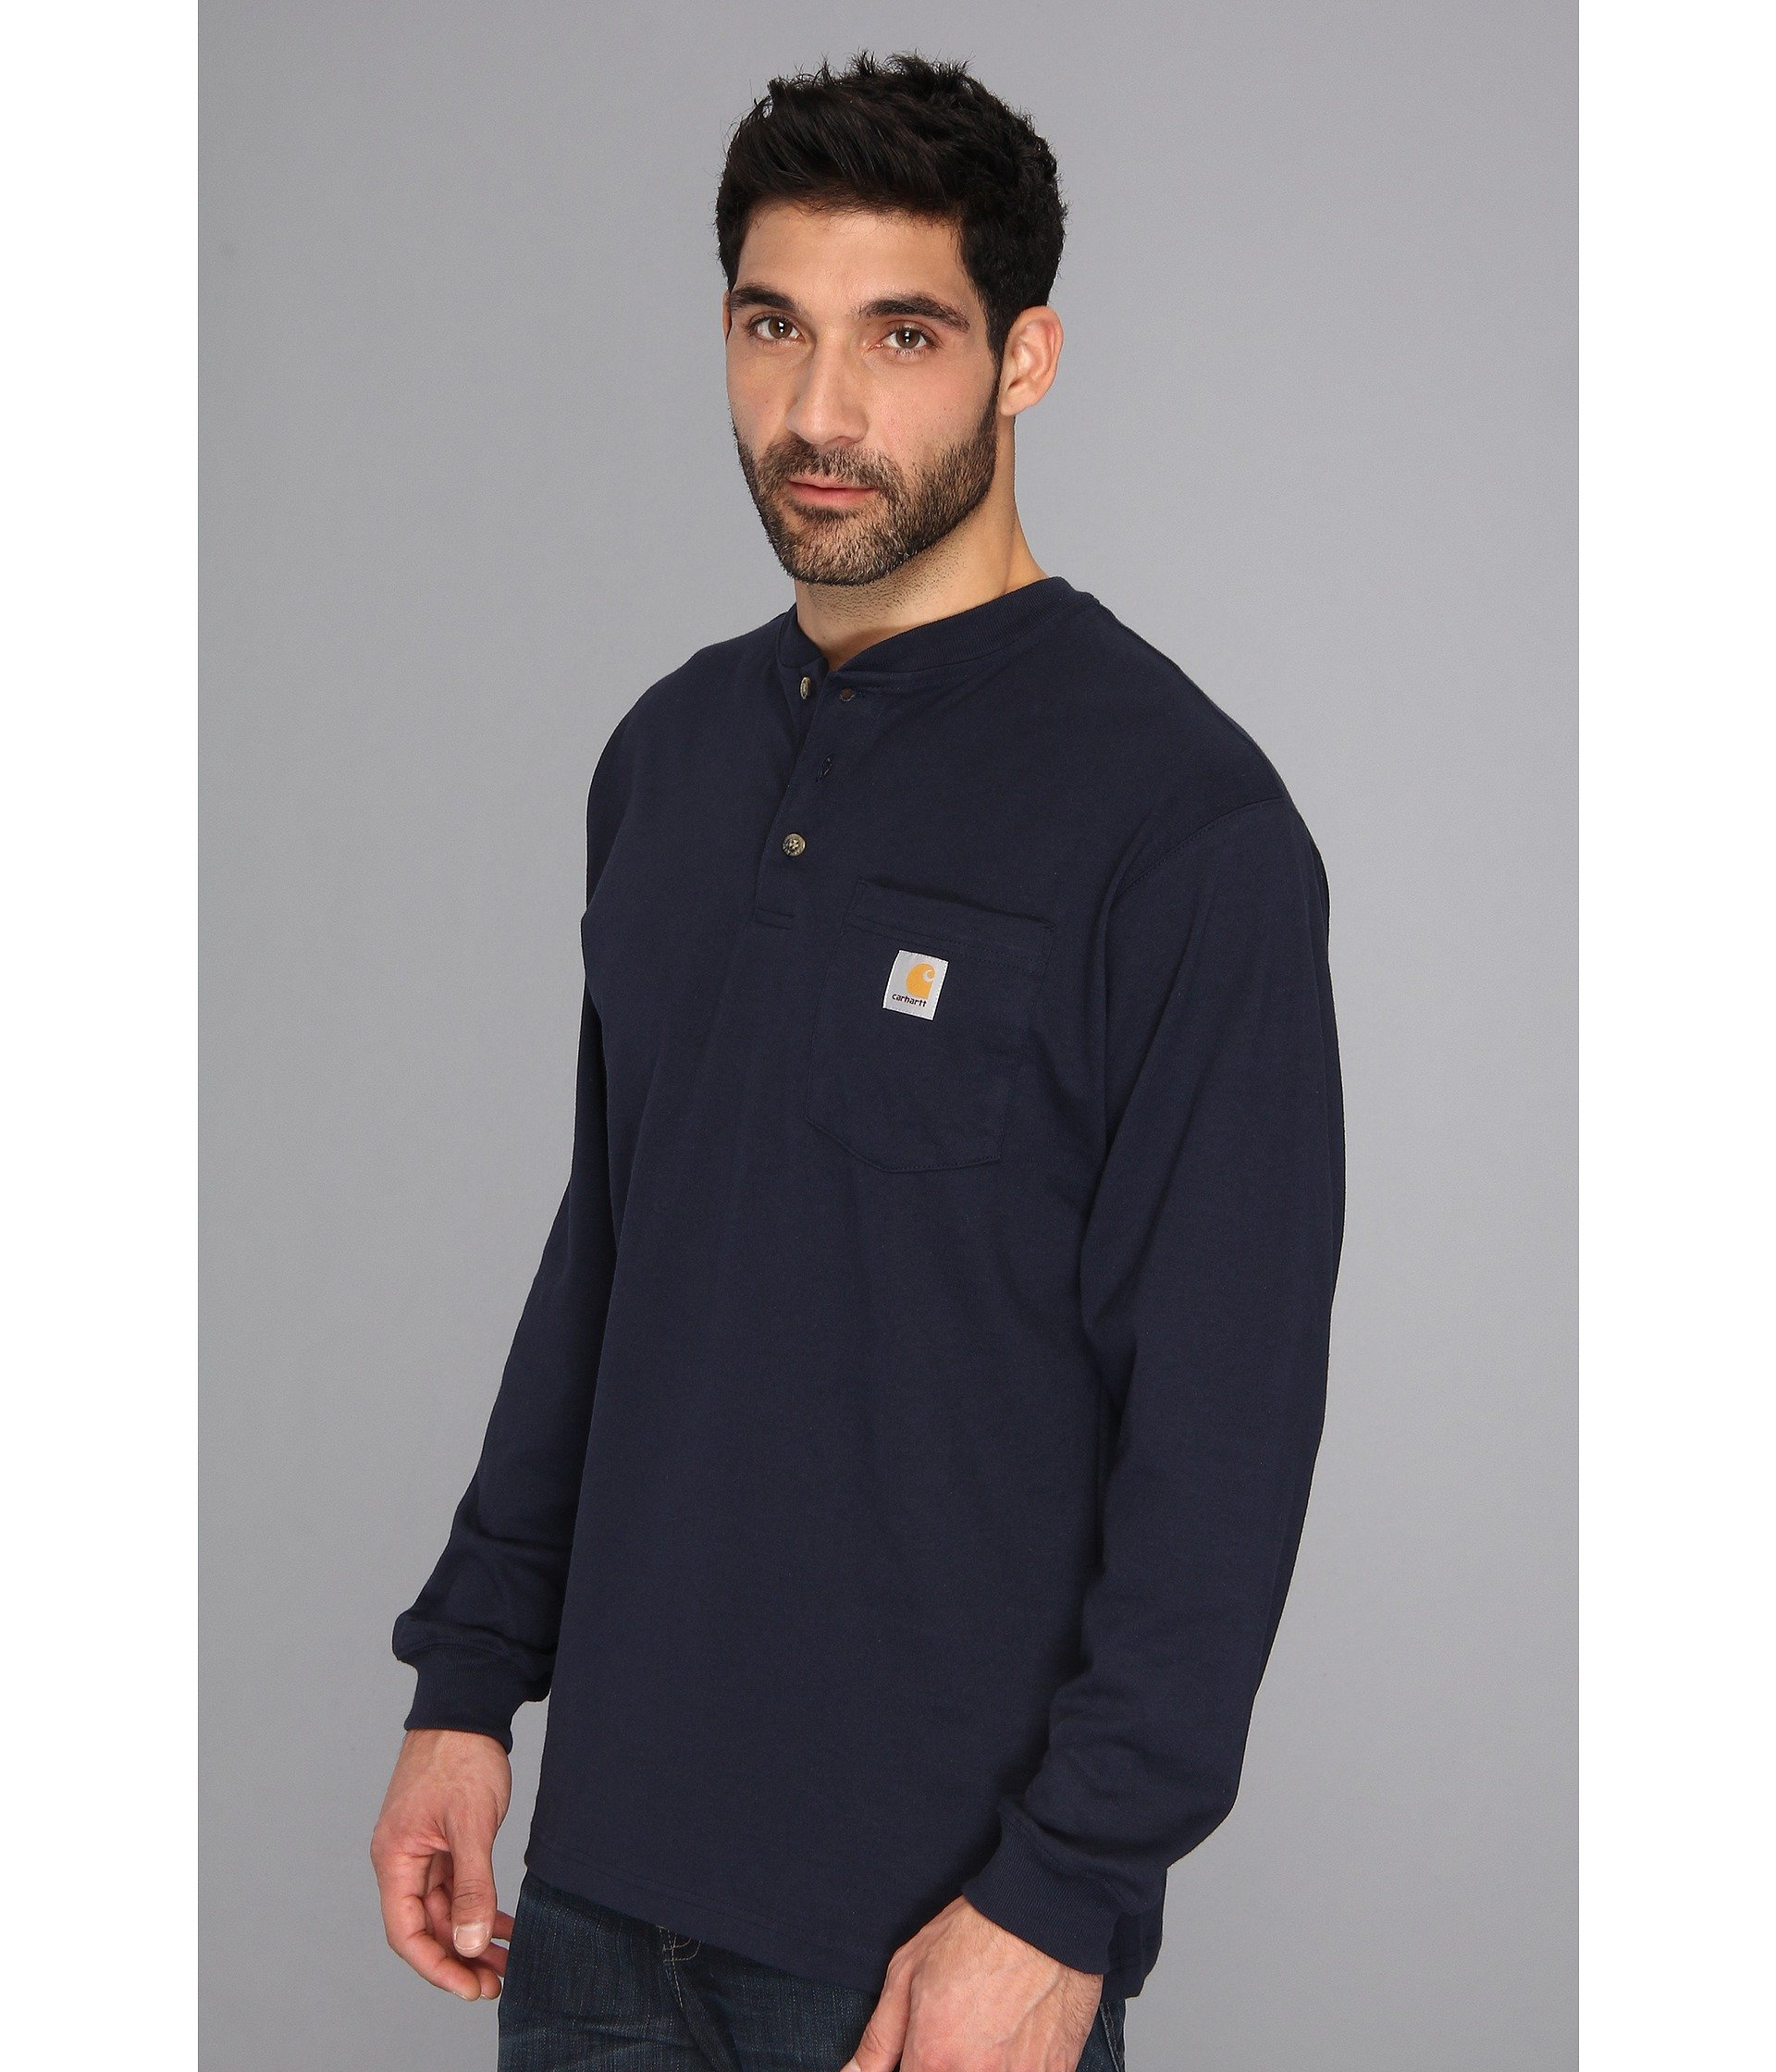 s Henley Carhartt amp; Workwear L Tall Navy Big Pocket rT0qrYw